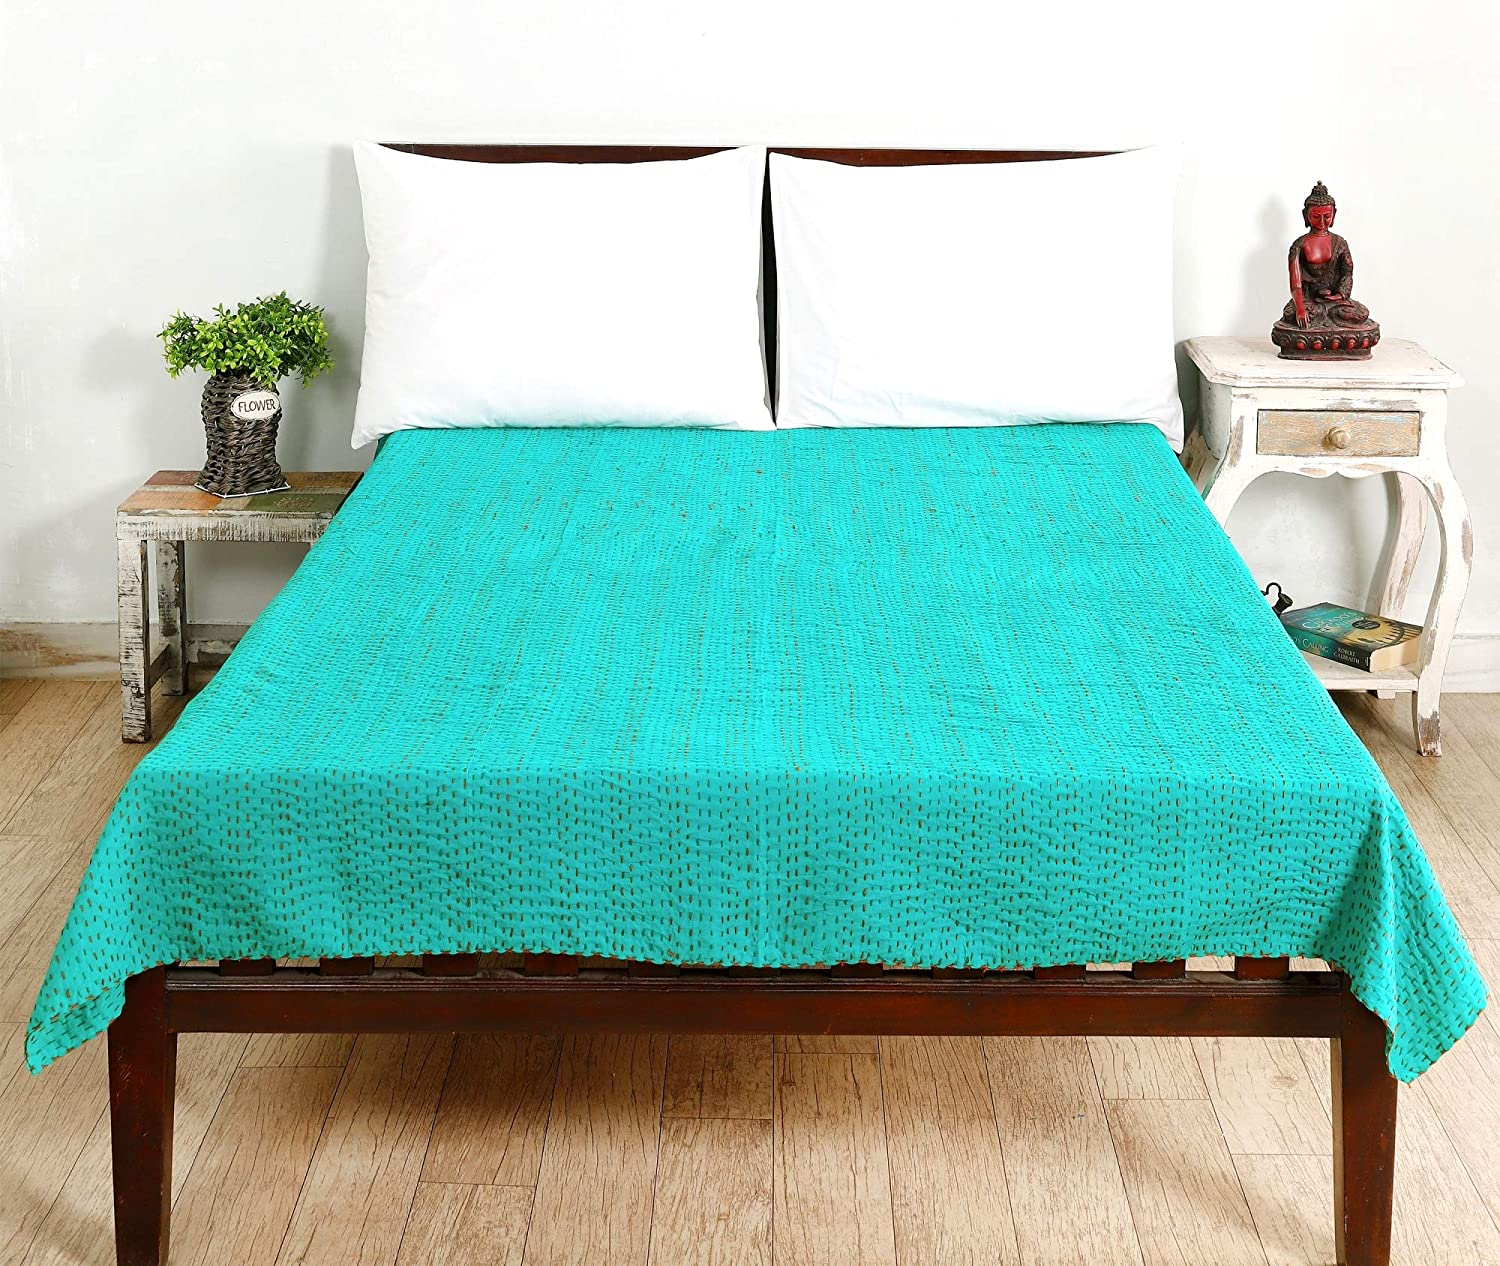 Handicraft-Palace Indian Handmade Twin Size Quilt Solid Color Kantha Work Quilt Bedspread Blanket Throw Decorative Green